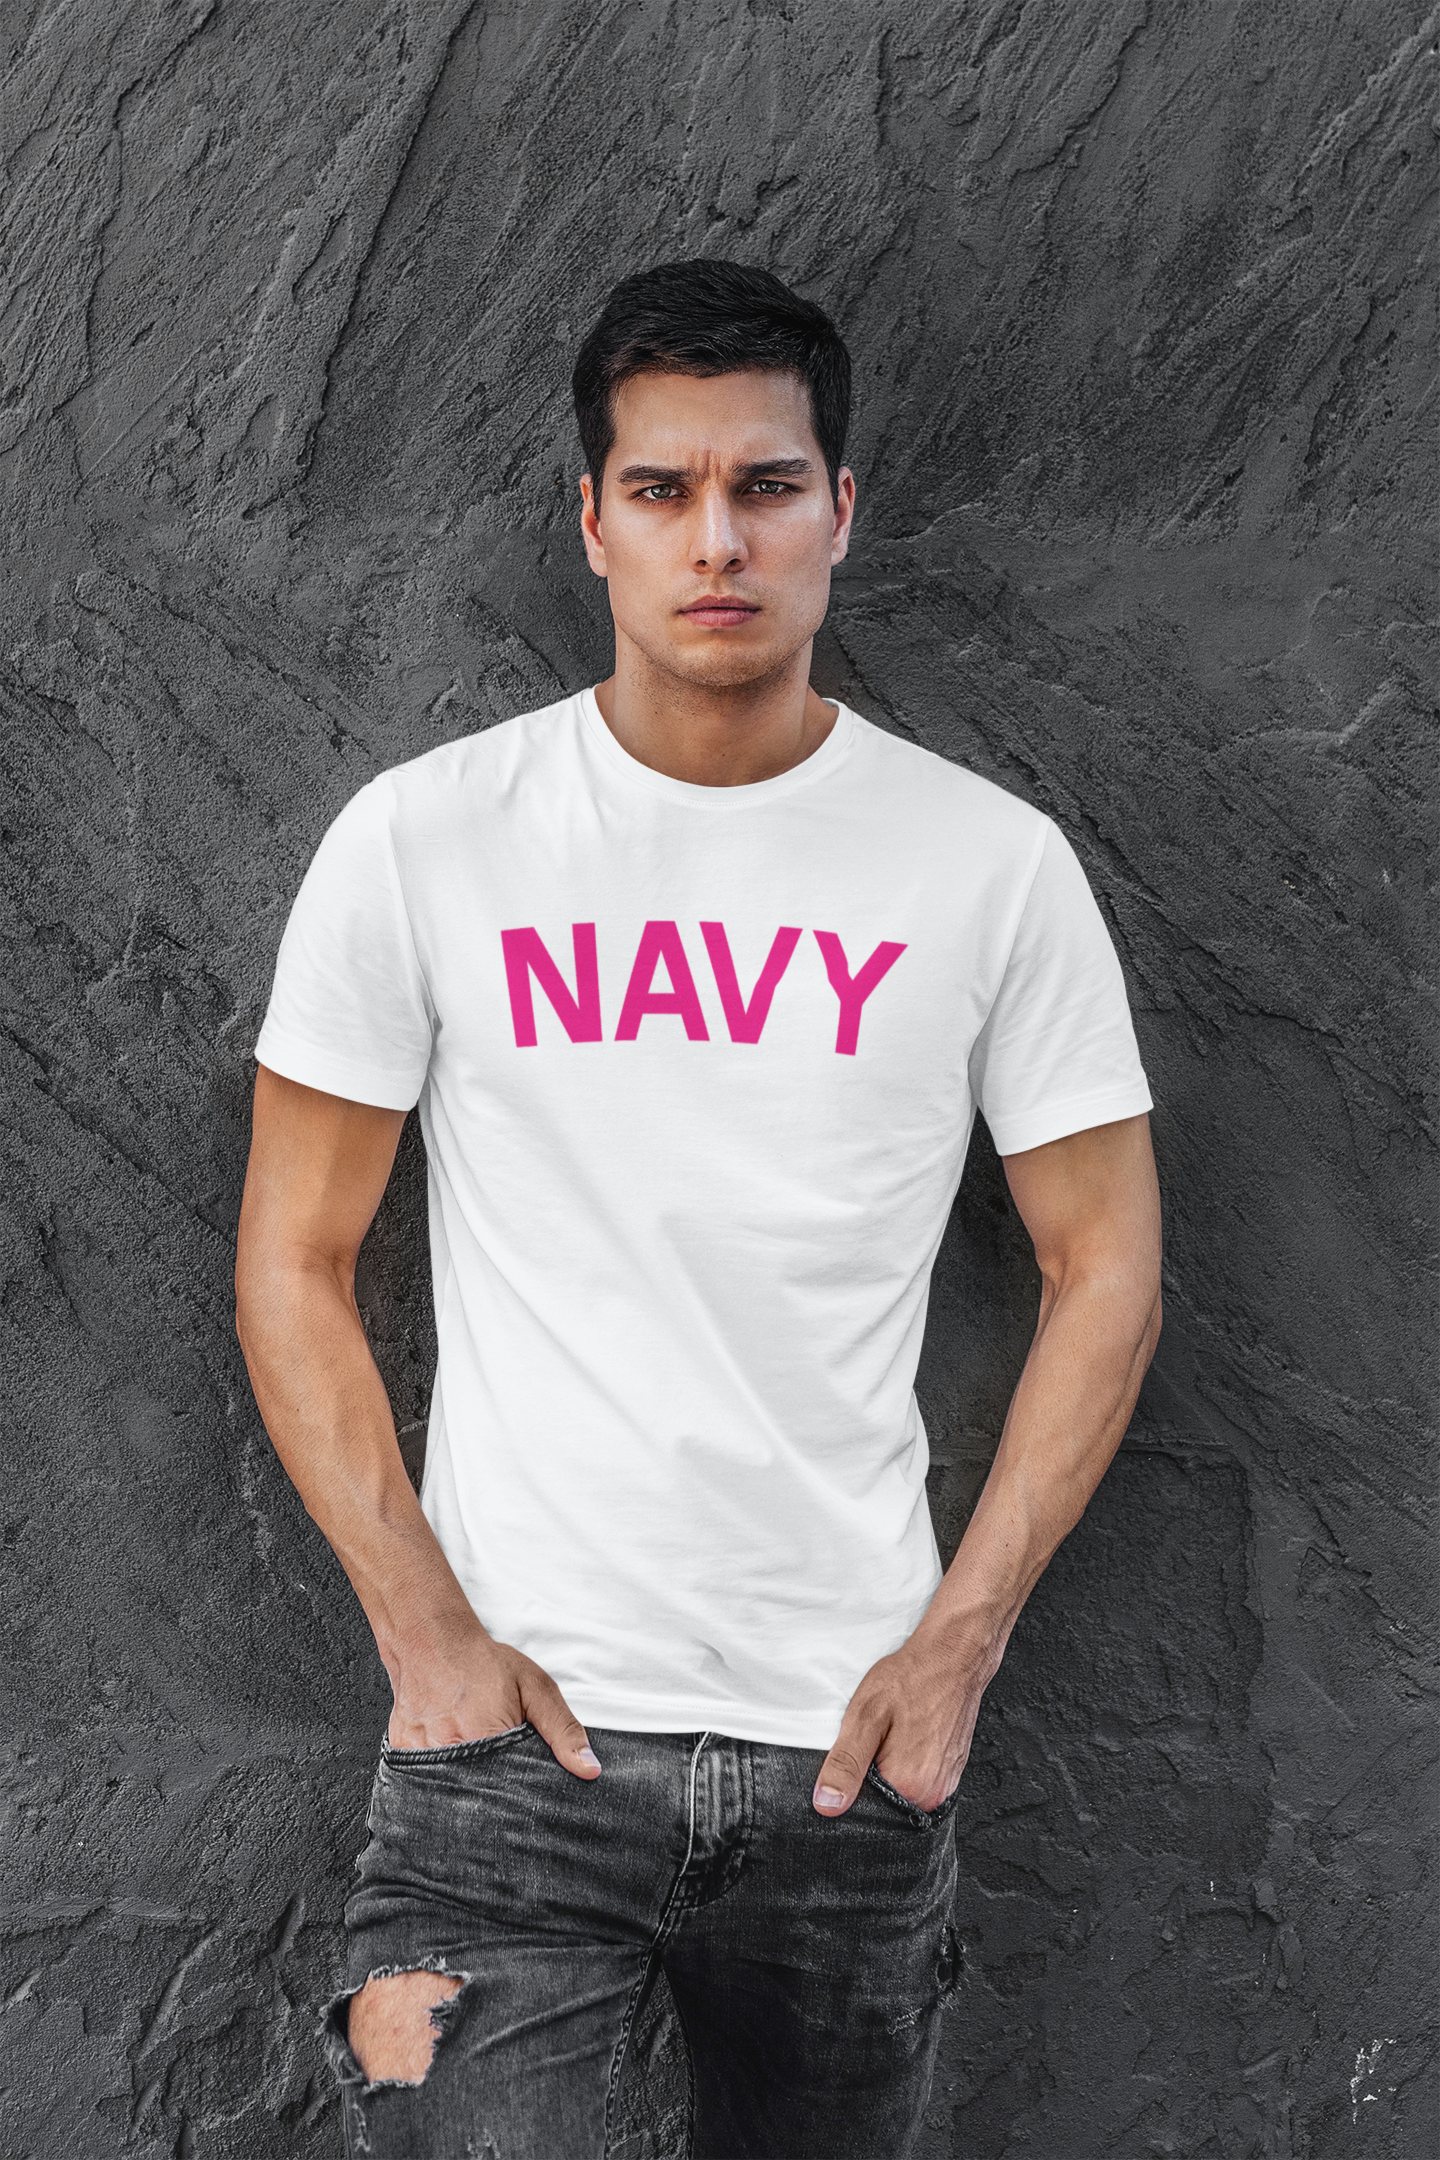 Navy T Shirt White For Veterans Day Gift By LeRage Shirts Front View